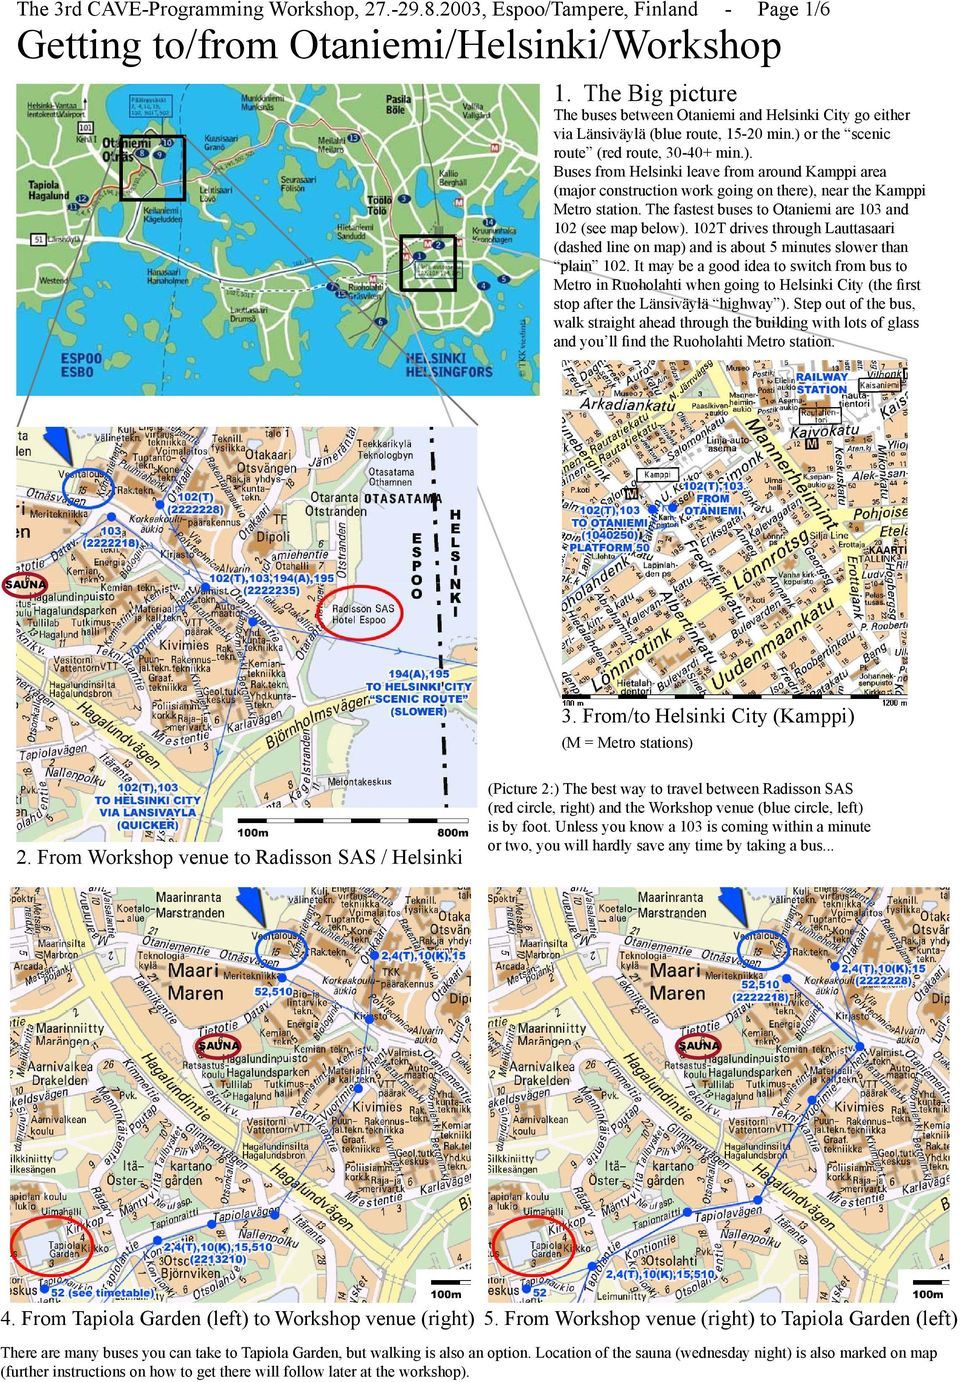 or the scenic route (red route, 30-40+ min.). Buses from Helsinki leave from around Kamppi area (major construction work going on there), near the Kamppi Metro station.